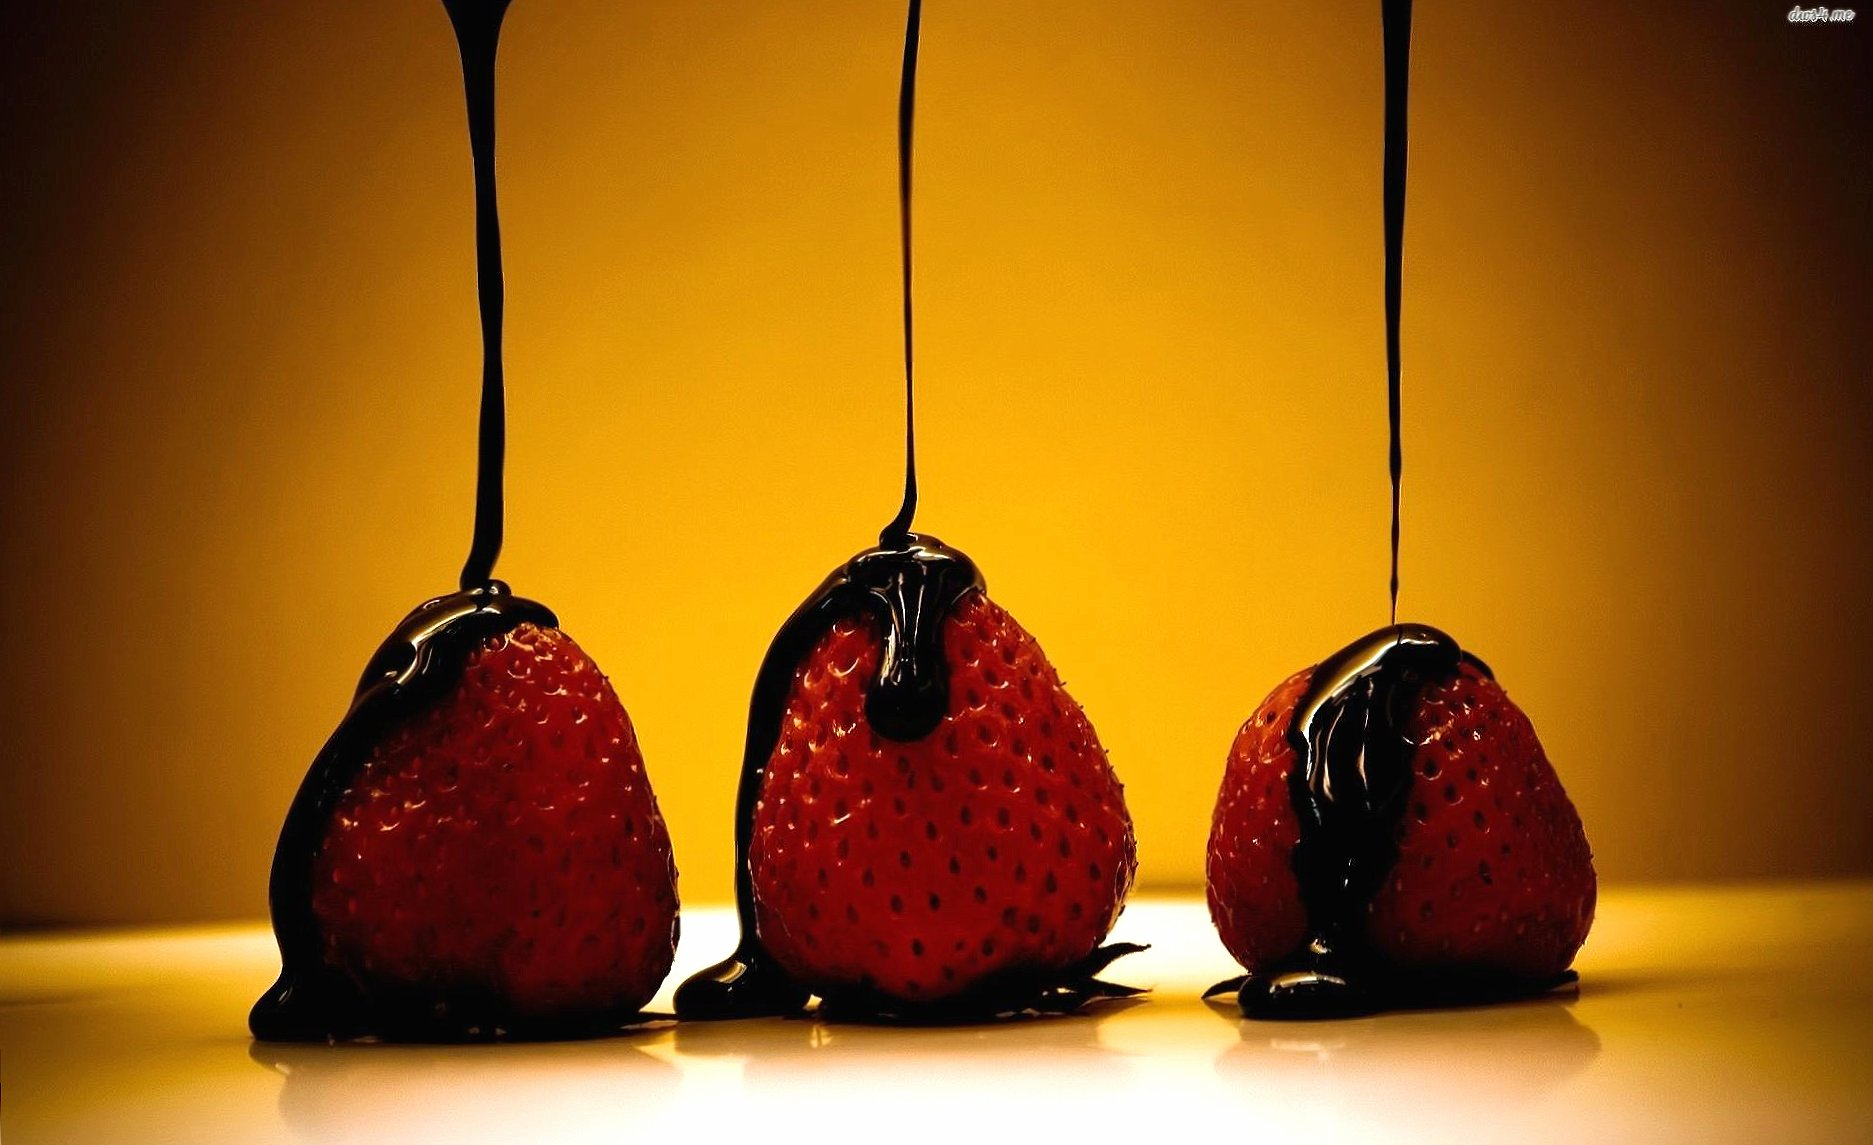 strawberries covered of chocolate wallpapers HD quality